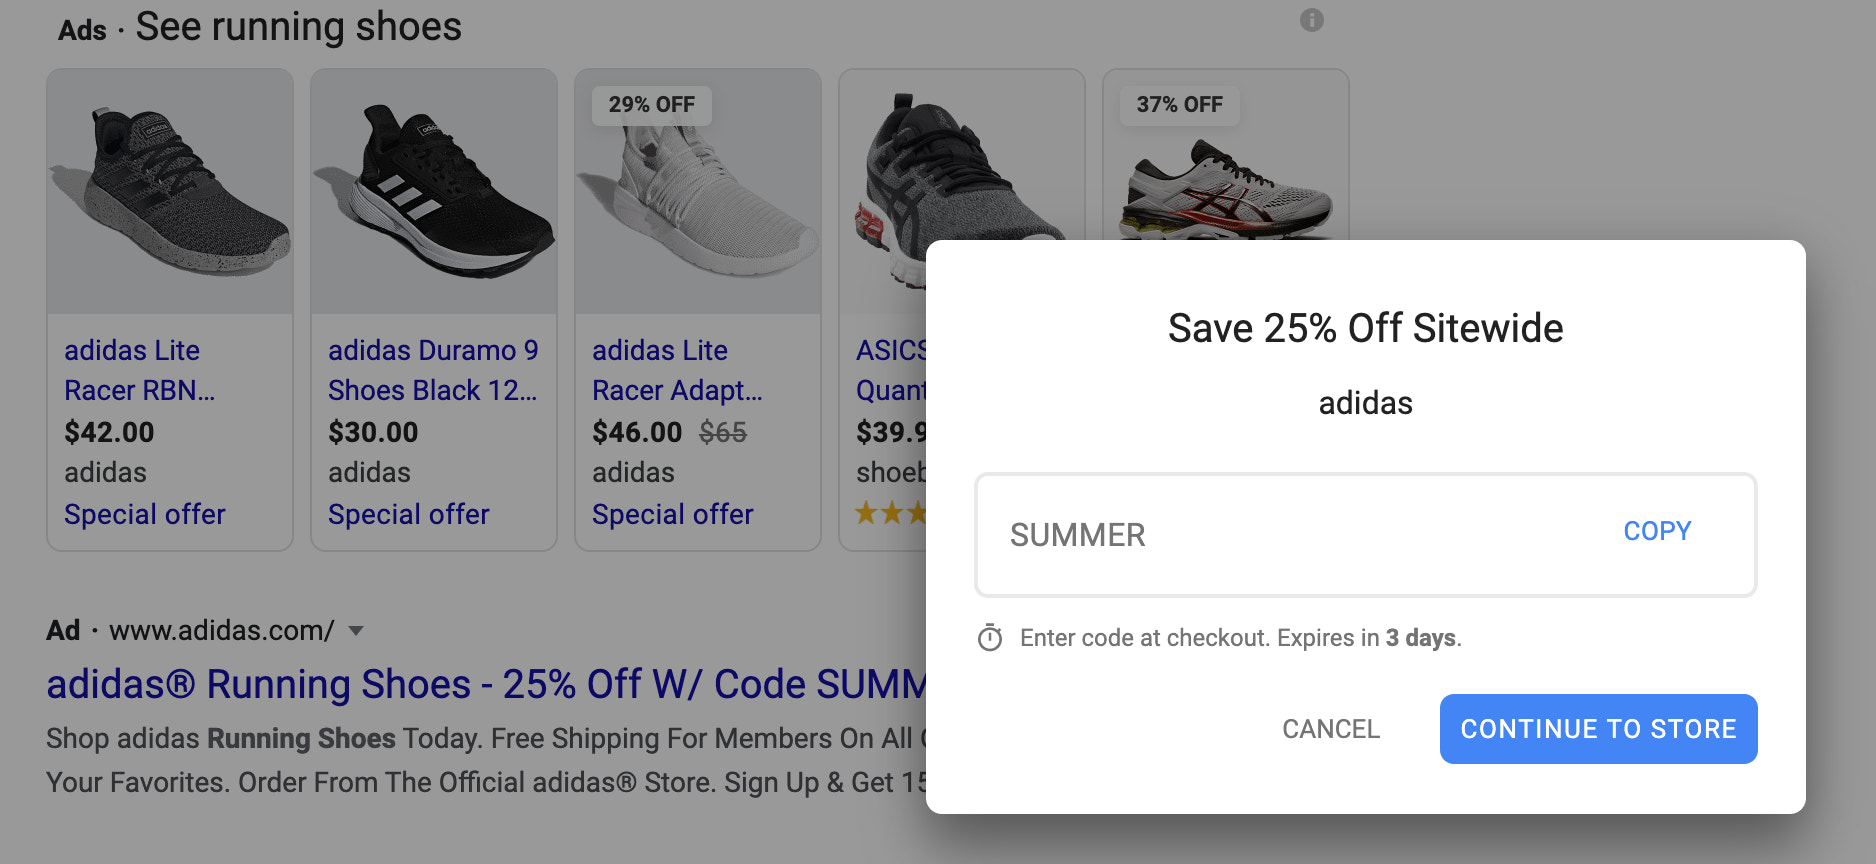 The Ultimate Guide To Shopping Ads On Google In 2020